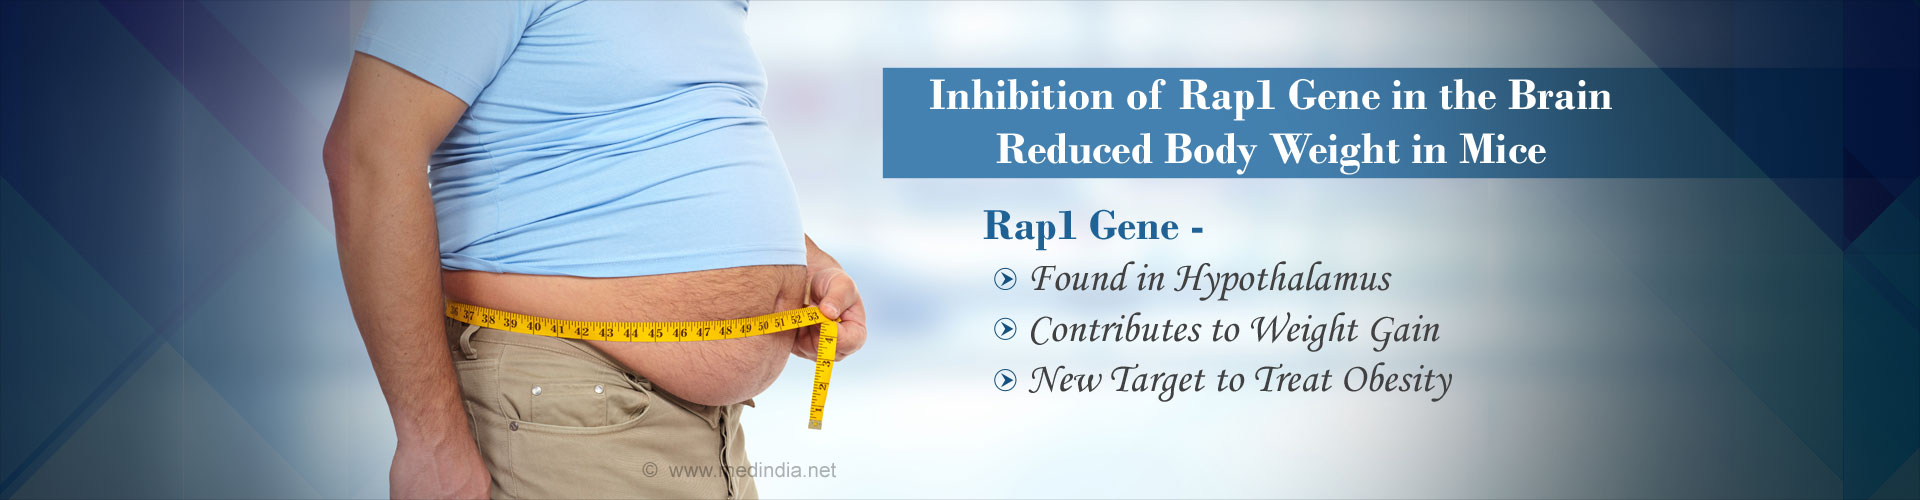 Rap1 Gene in the Brain Could be a Therapeutic Target for Obesity in Future